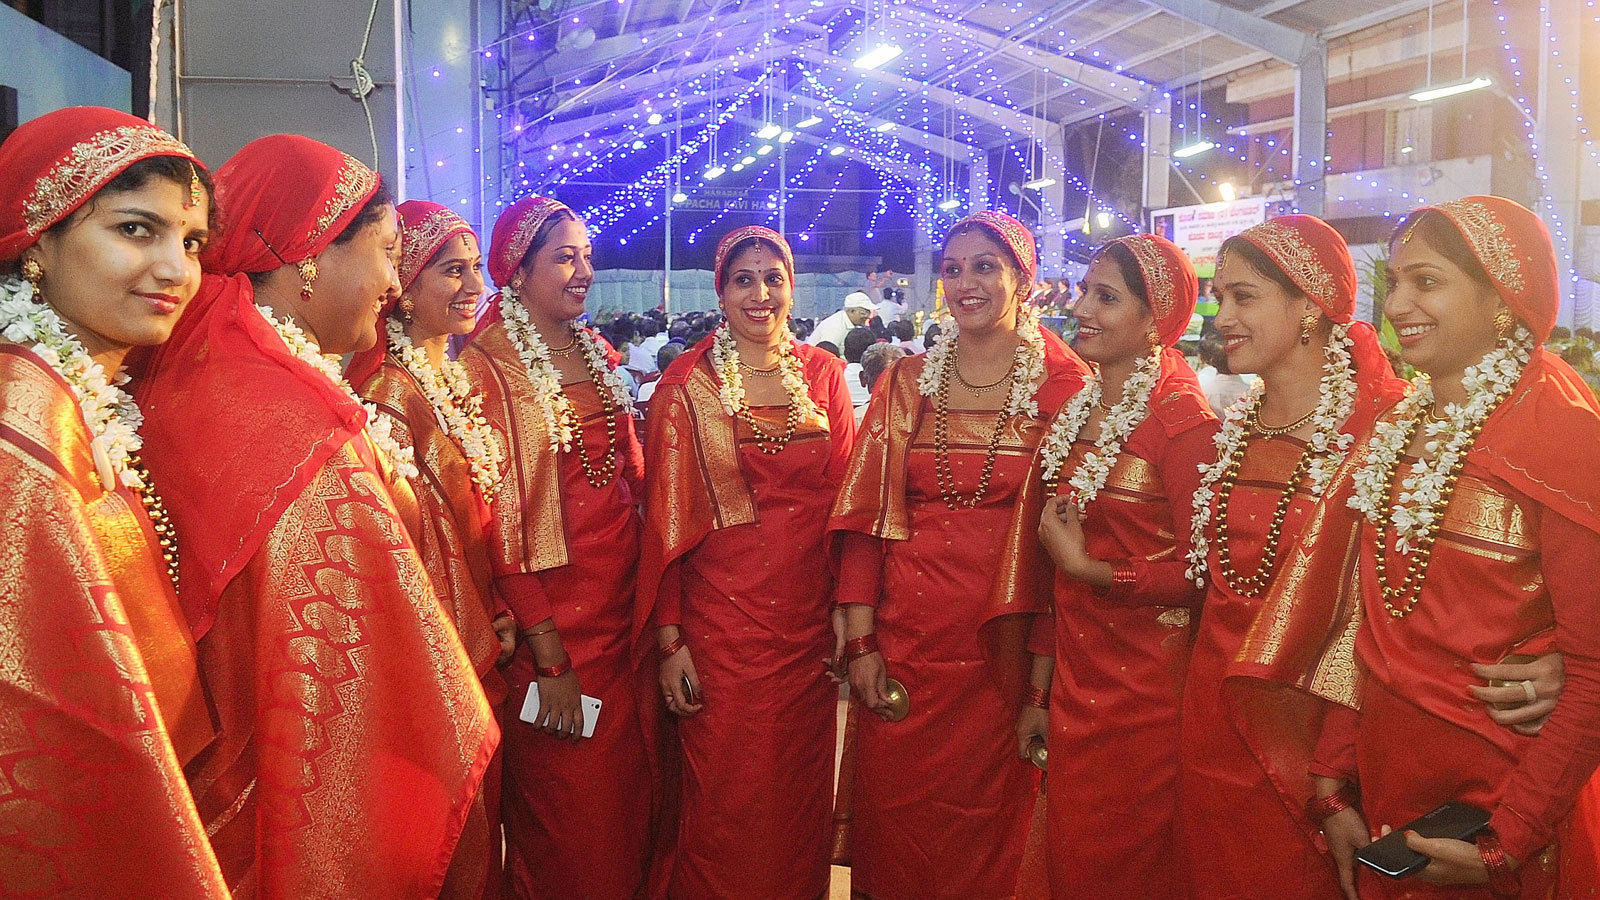 Late marriage in the community due to limited choice of brides, grooms has adversely impacted fertility